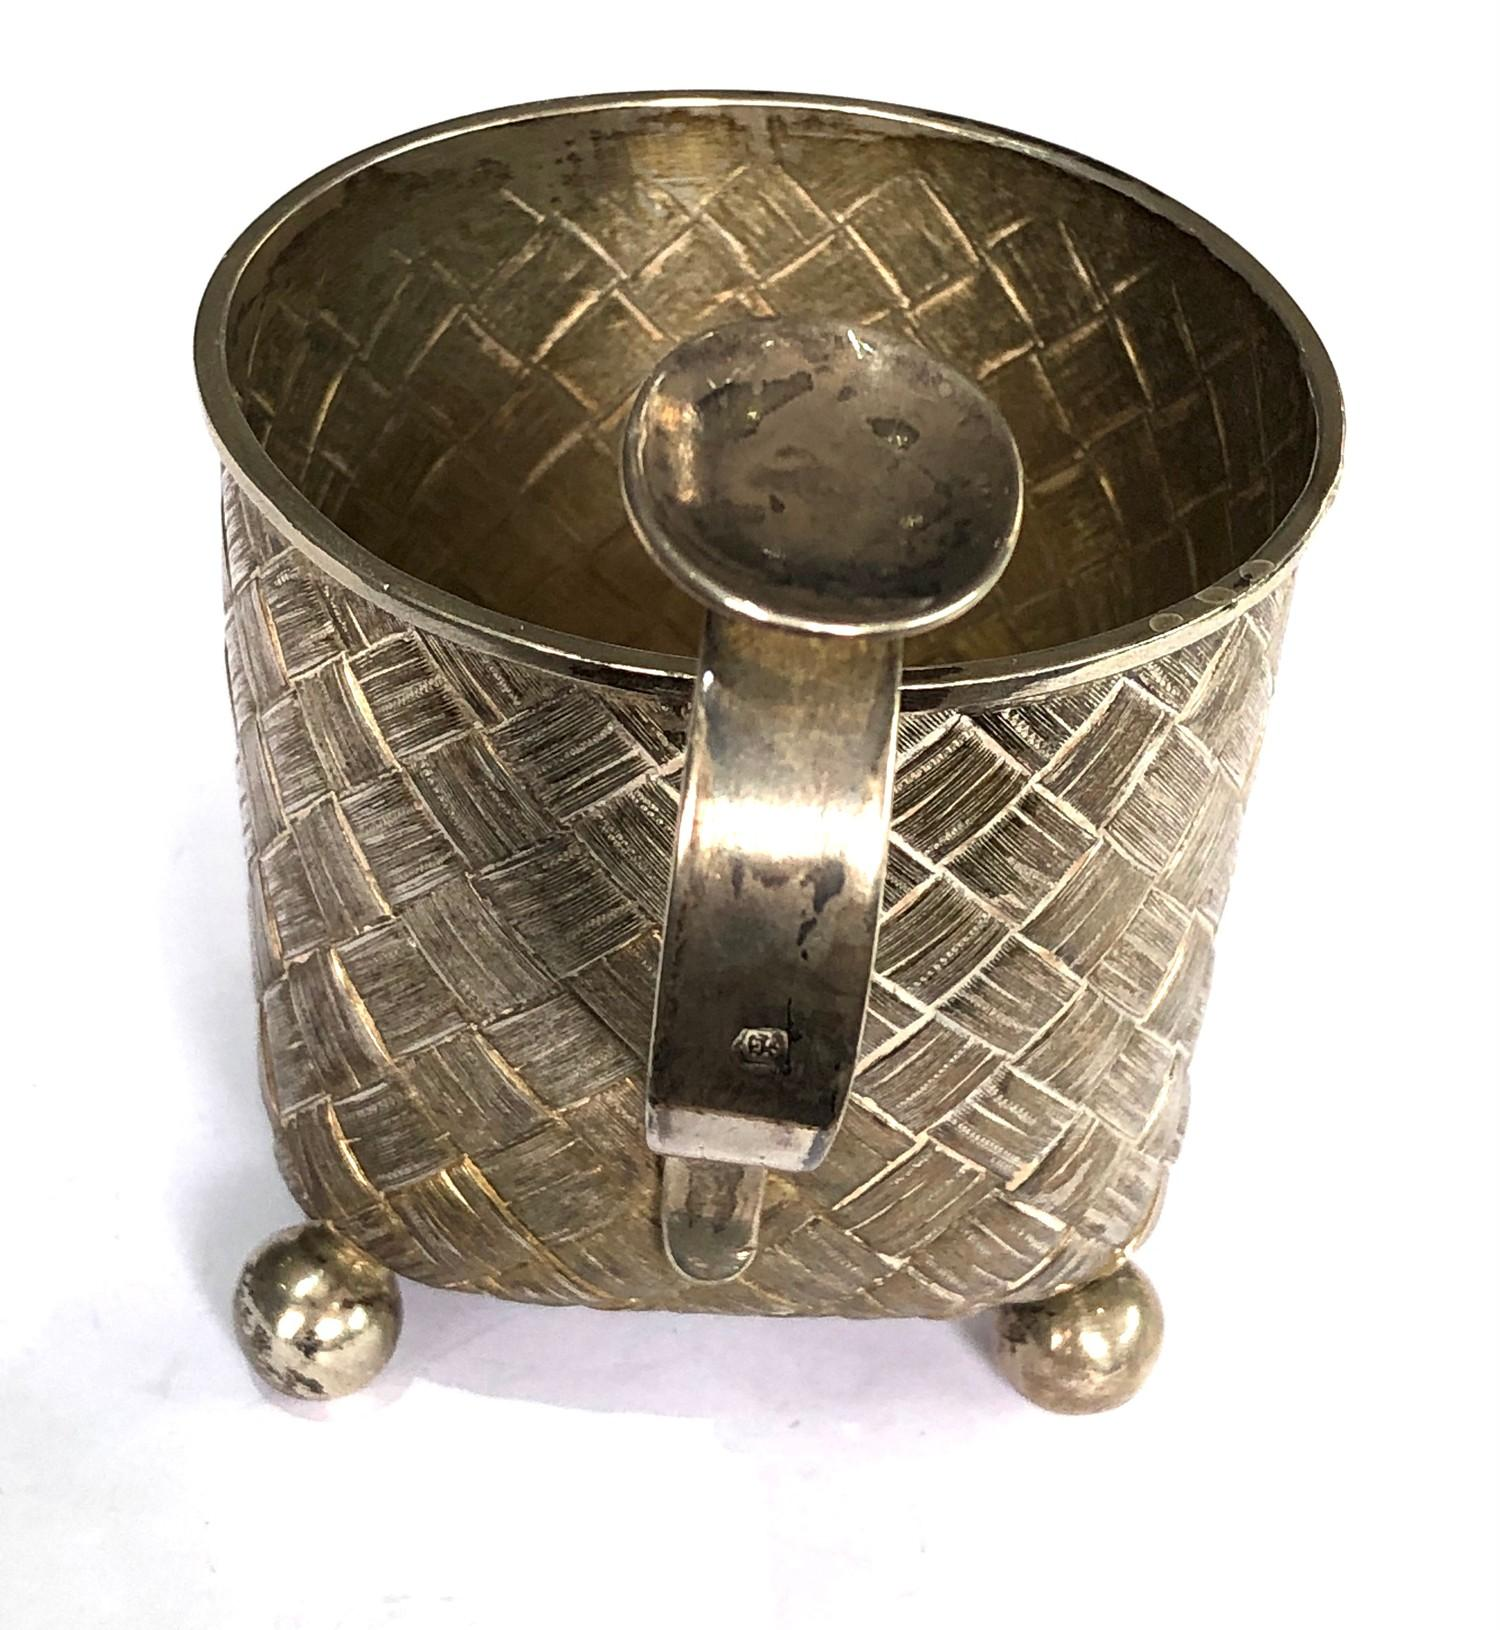 Antique 1877 Russian silver cup lattice work design measures approx height 10cm cup dia 7.5cm full - Image 3 of 7